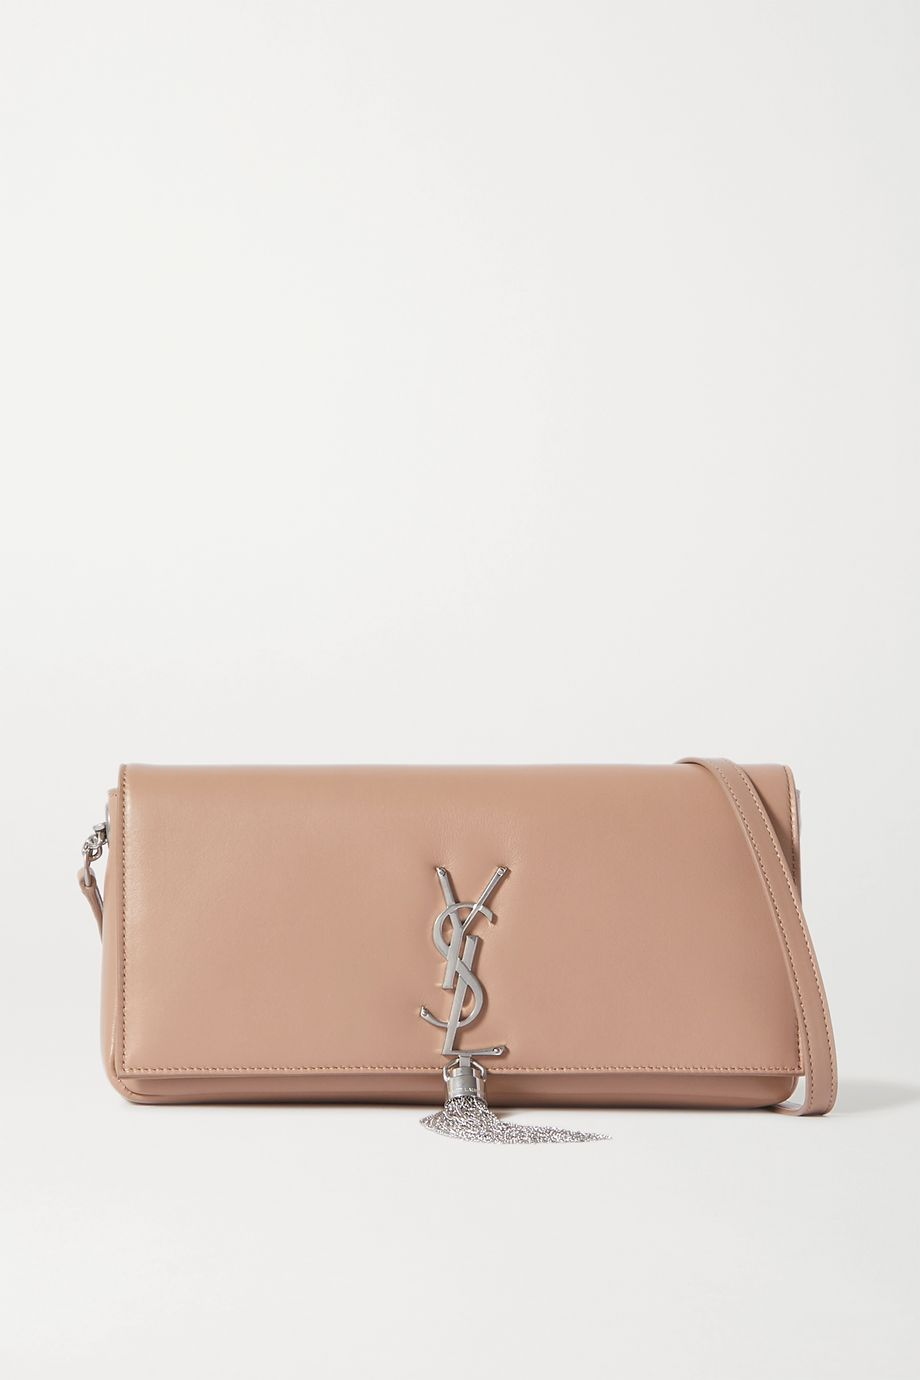 SAINT LAURENT Kate leather shoulder bag